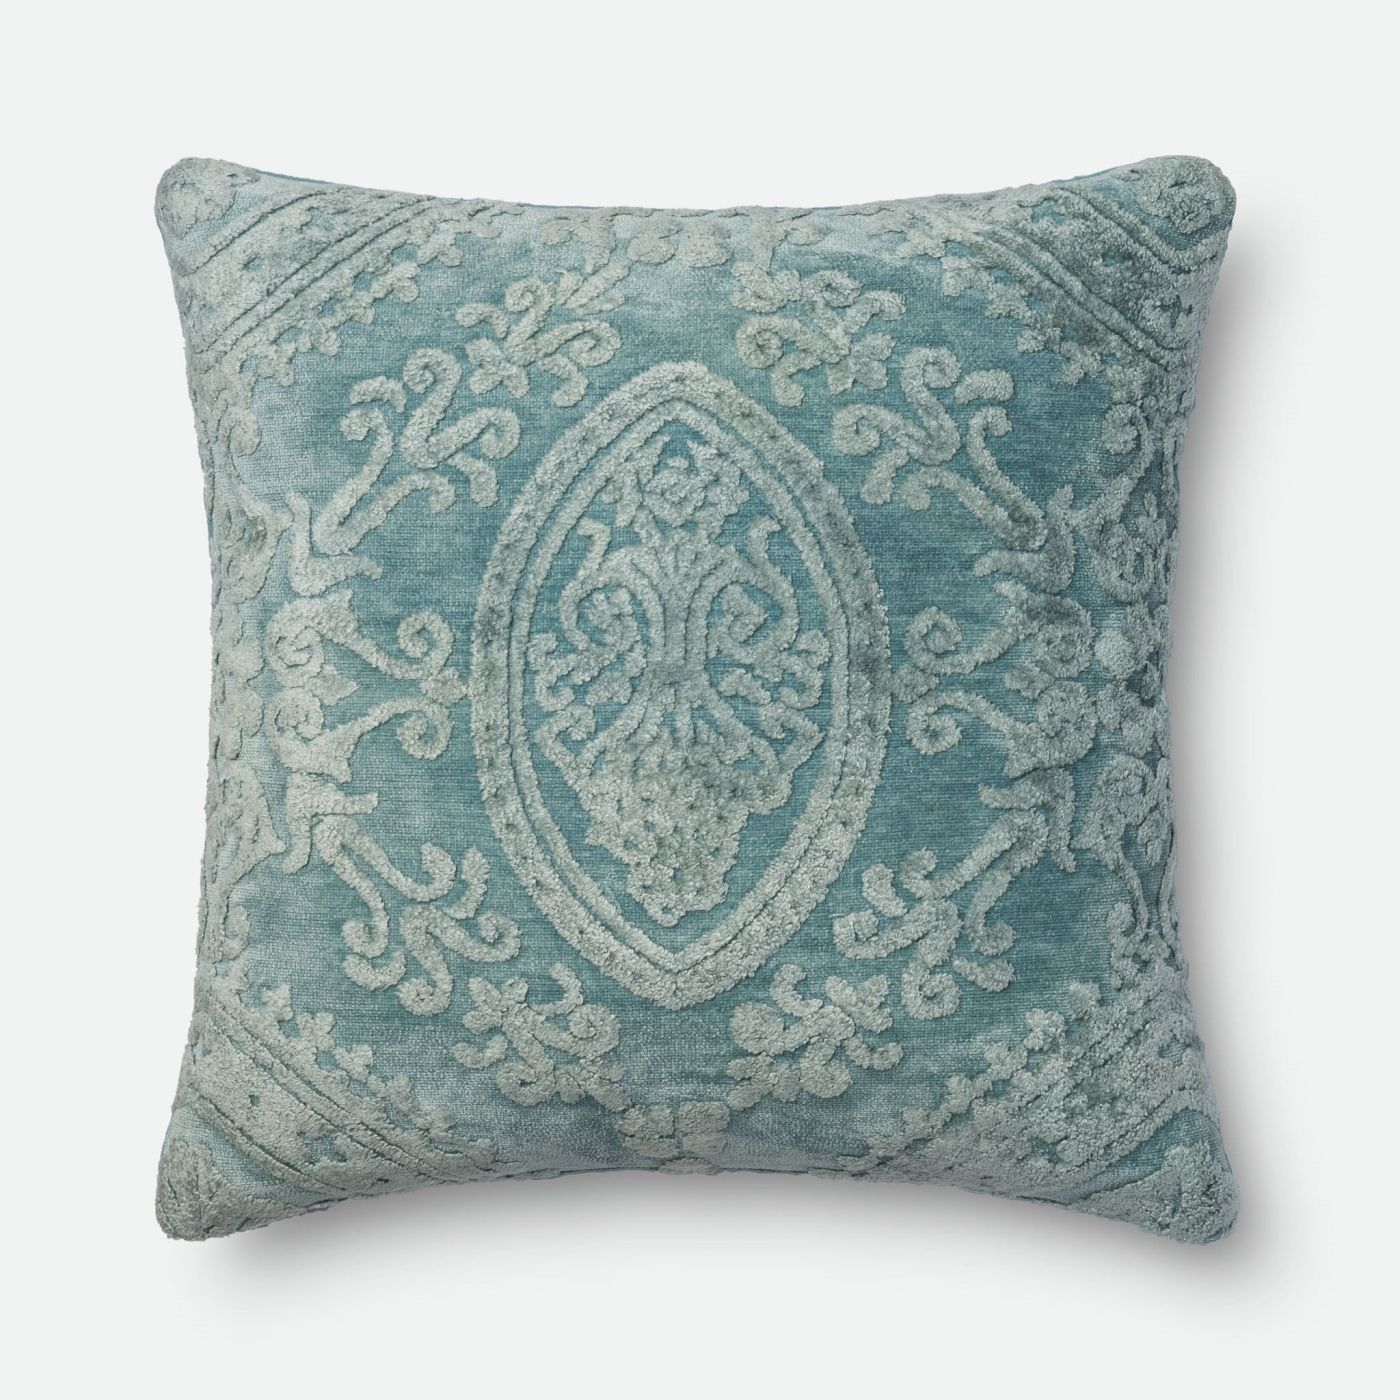 Throw Pillow Warehouse : Loloi Rugs Loloi Glacier Decorative Throw Pillow (GPI01) DSETGPI01GX00PIL3. Only $139.00 at ...